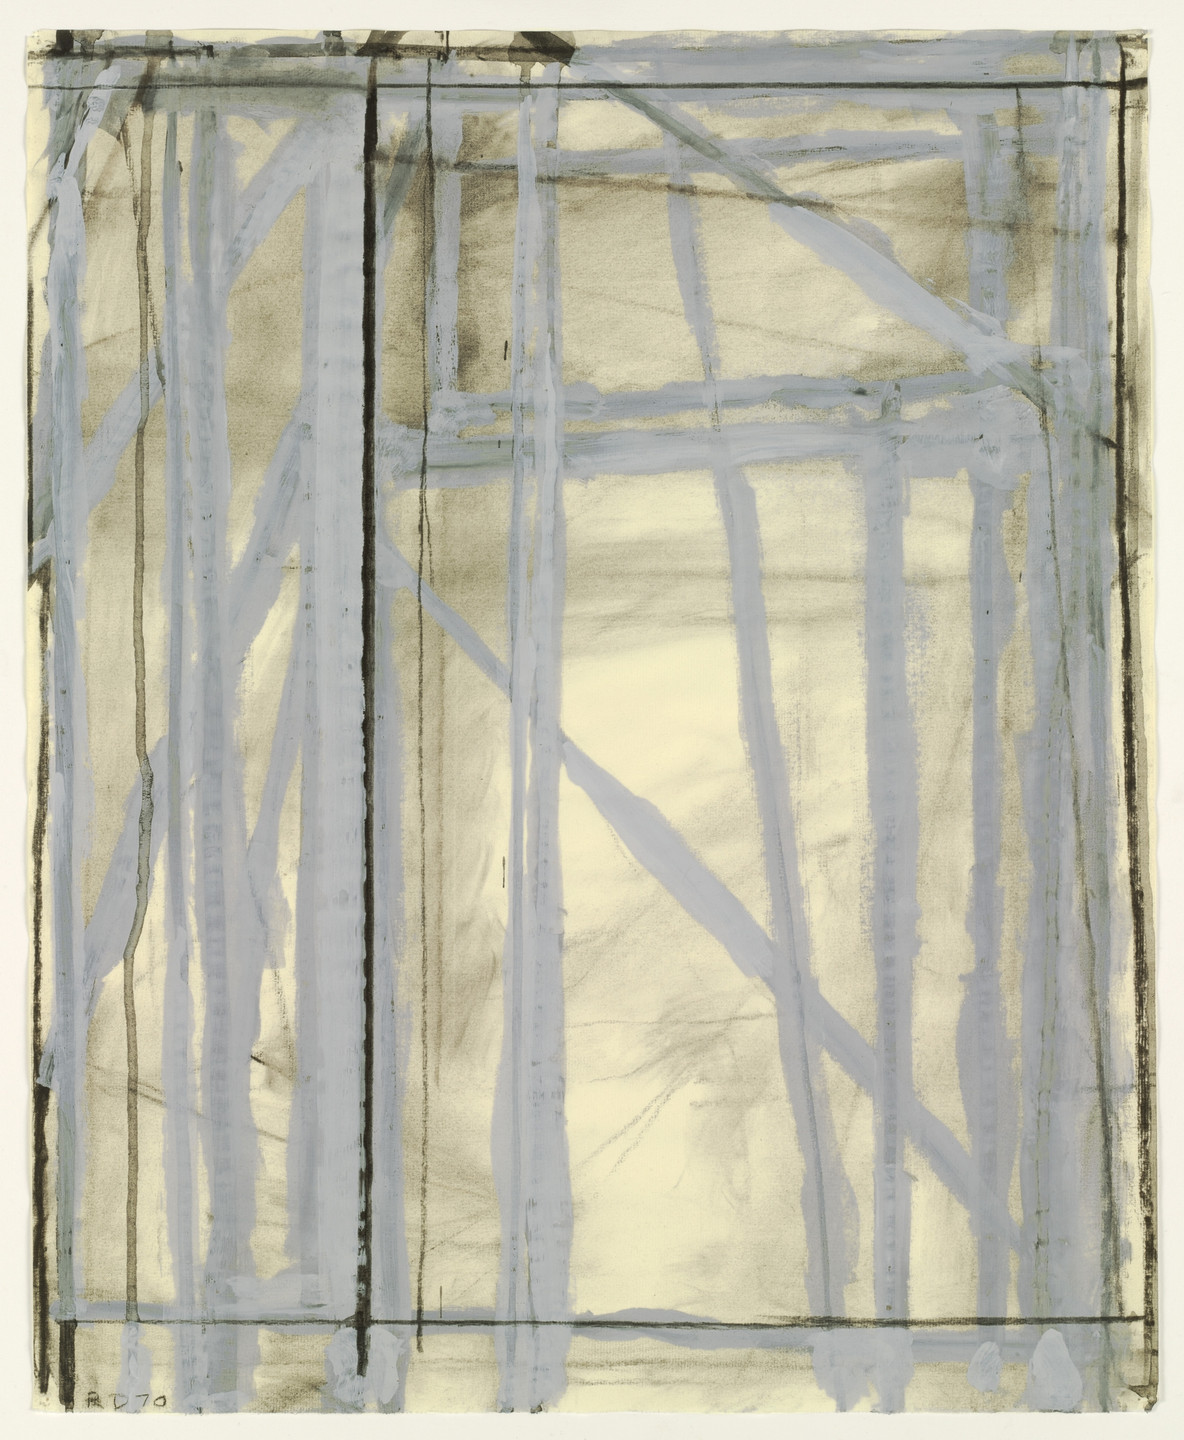 Richard Diebenkorn. Untitled. 1970